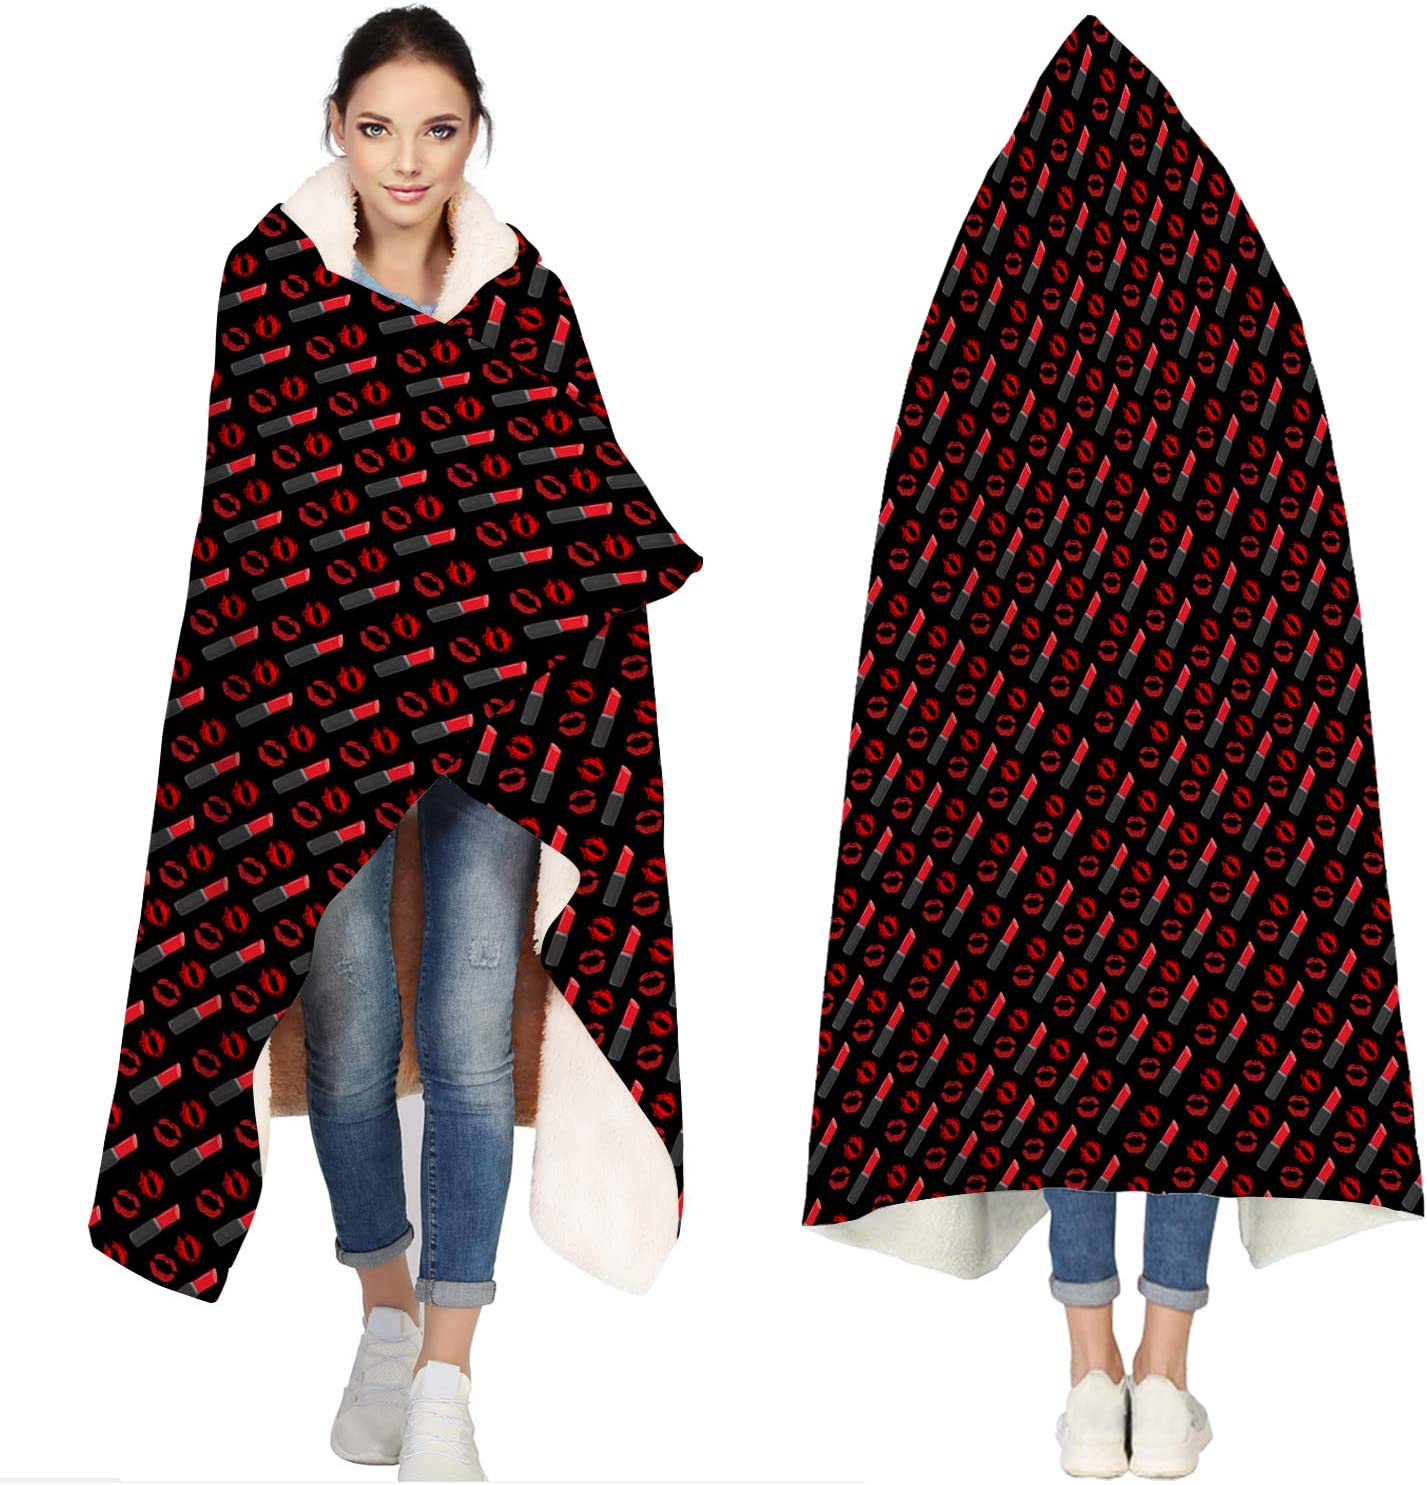 Seven Roses Hooded Blankets Sacramento Mall for Adults Lips - Lipsticks Ba Ranking TOP16 Sexy